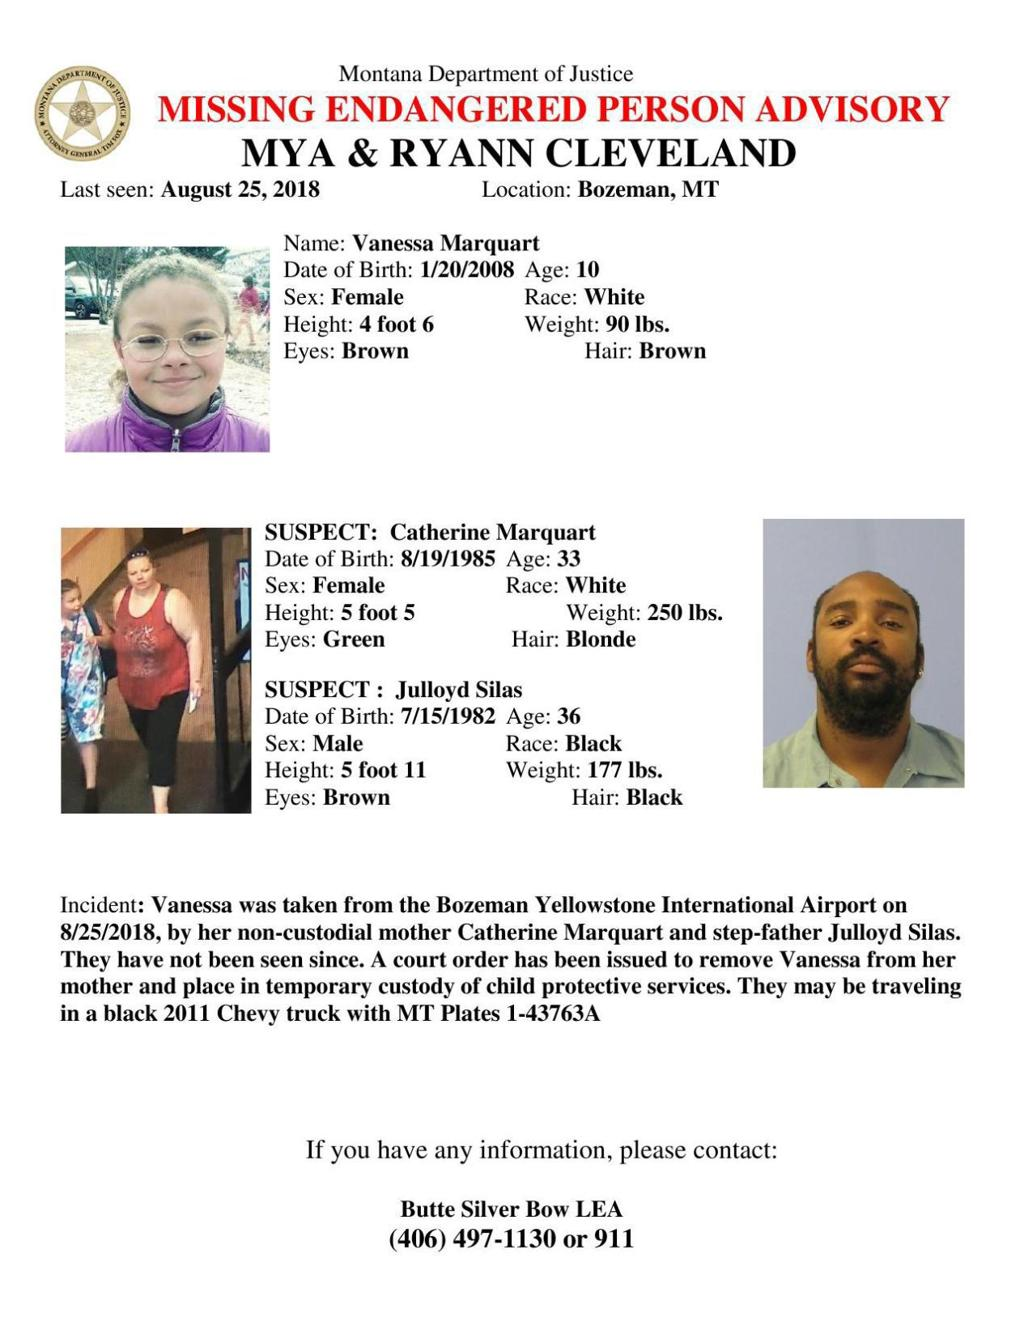 Alert issued for missing girl, age 10 | State & Regional